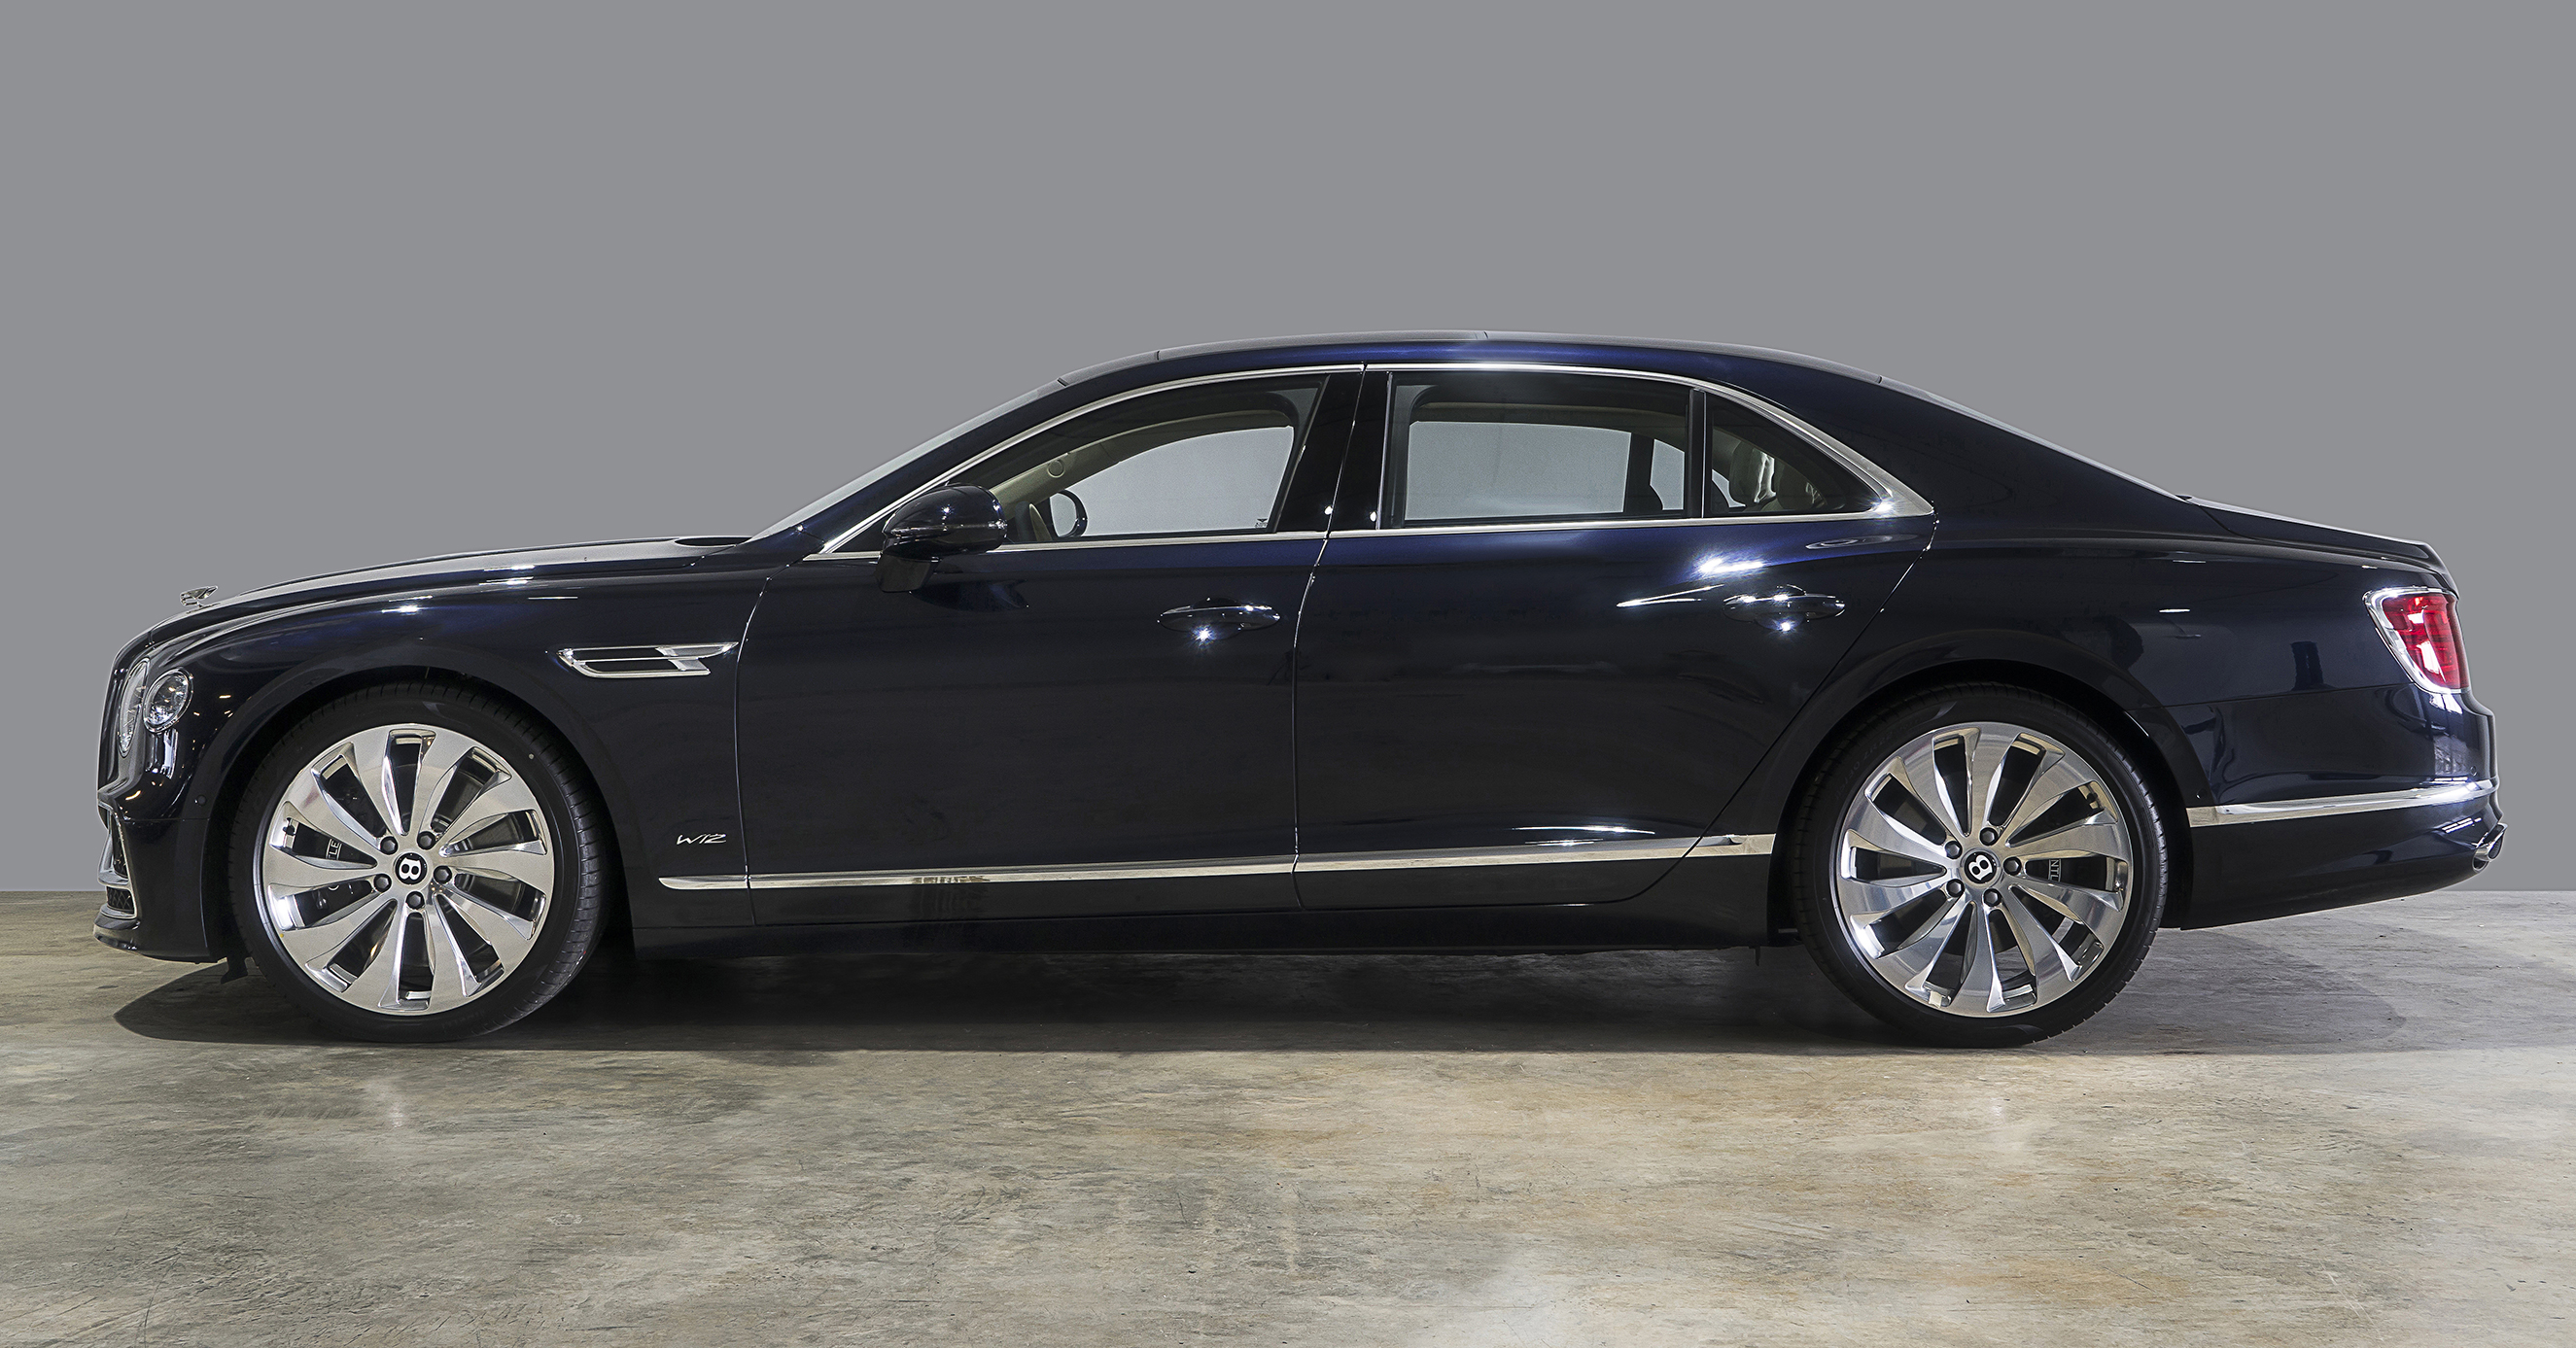 The new Flying Spur is a unique fusion of breathtaking performance, contemporary design and intuitive technology. It delivers an enriching experience for both the driver and those who prefer to be driven.